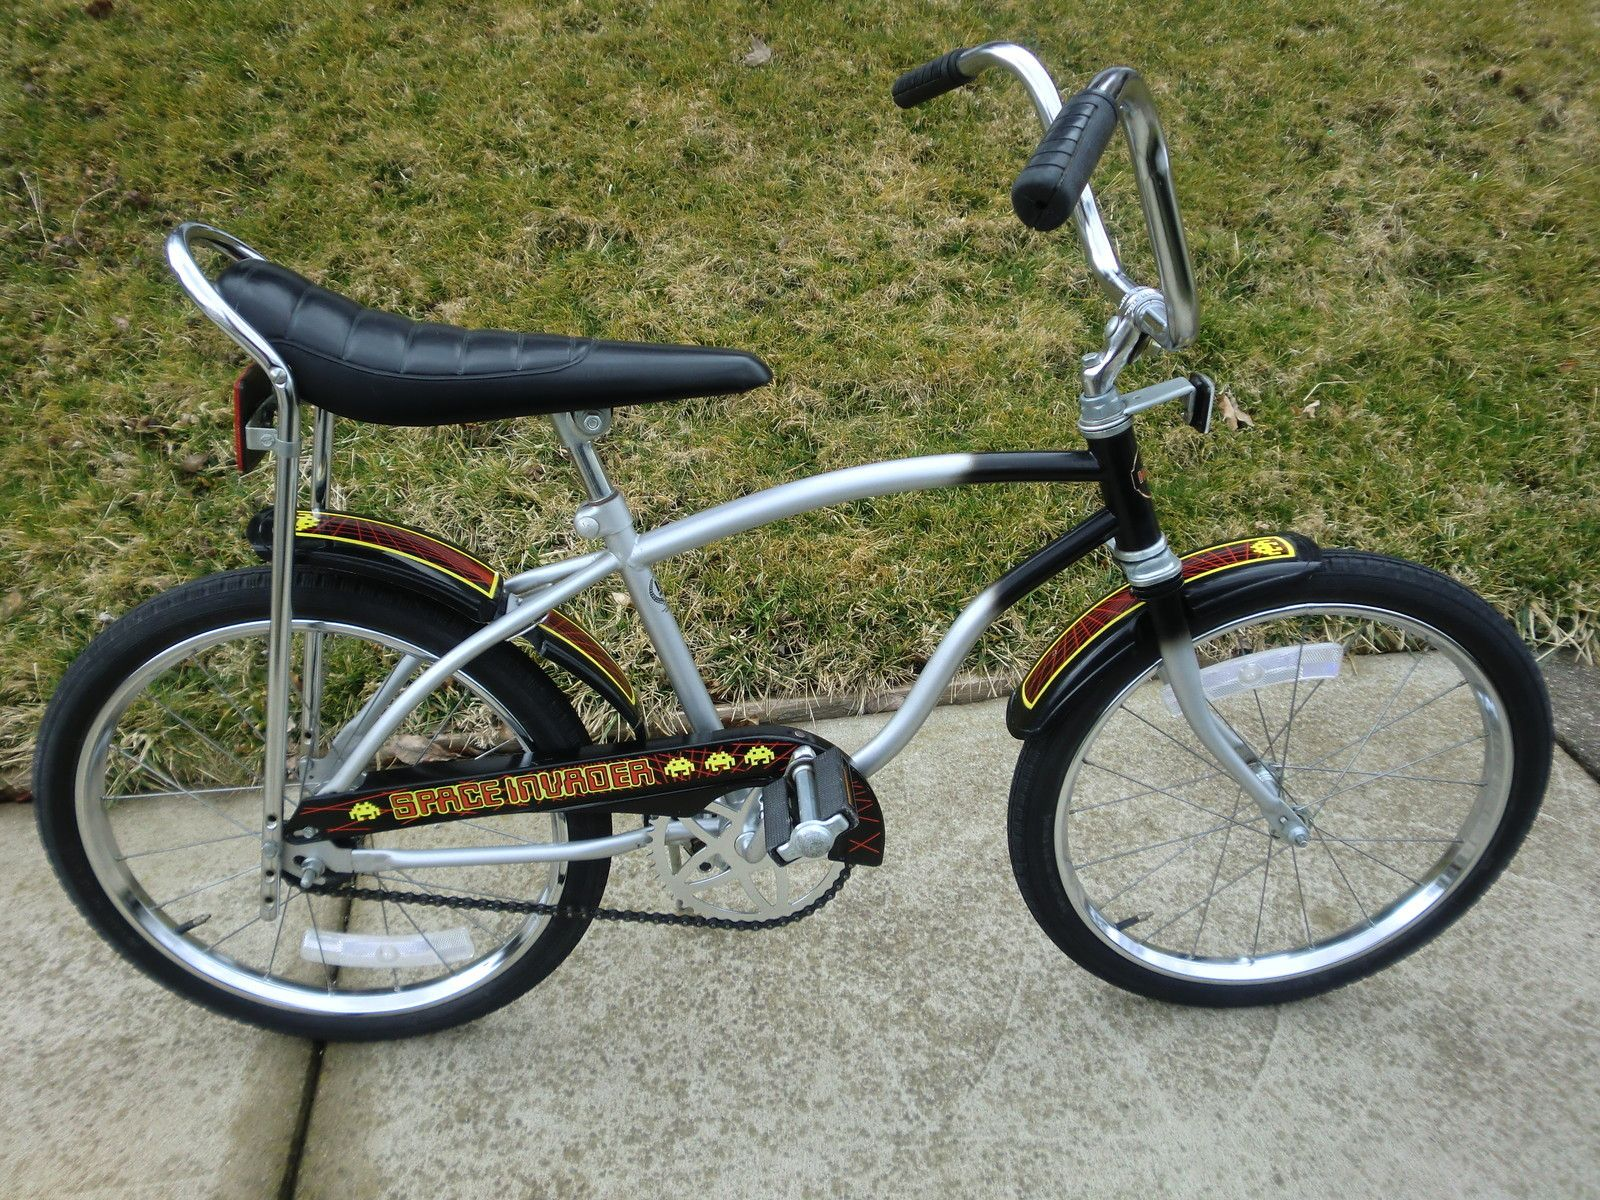 Pin Michael Armstrong Childhood Toys And Bikes